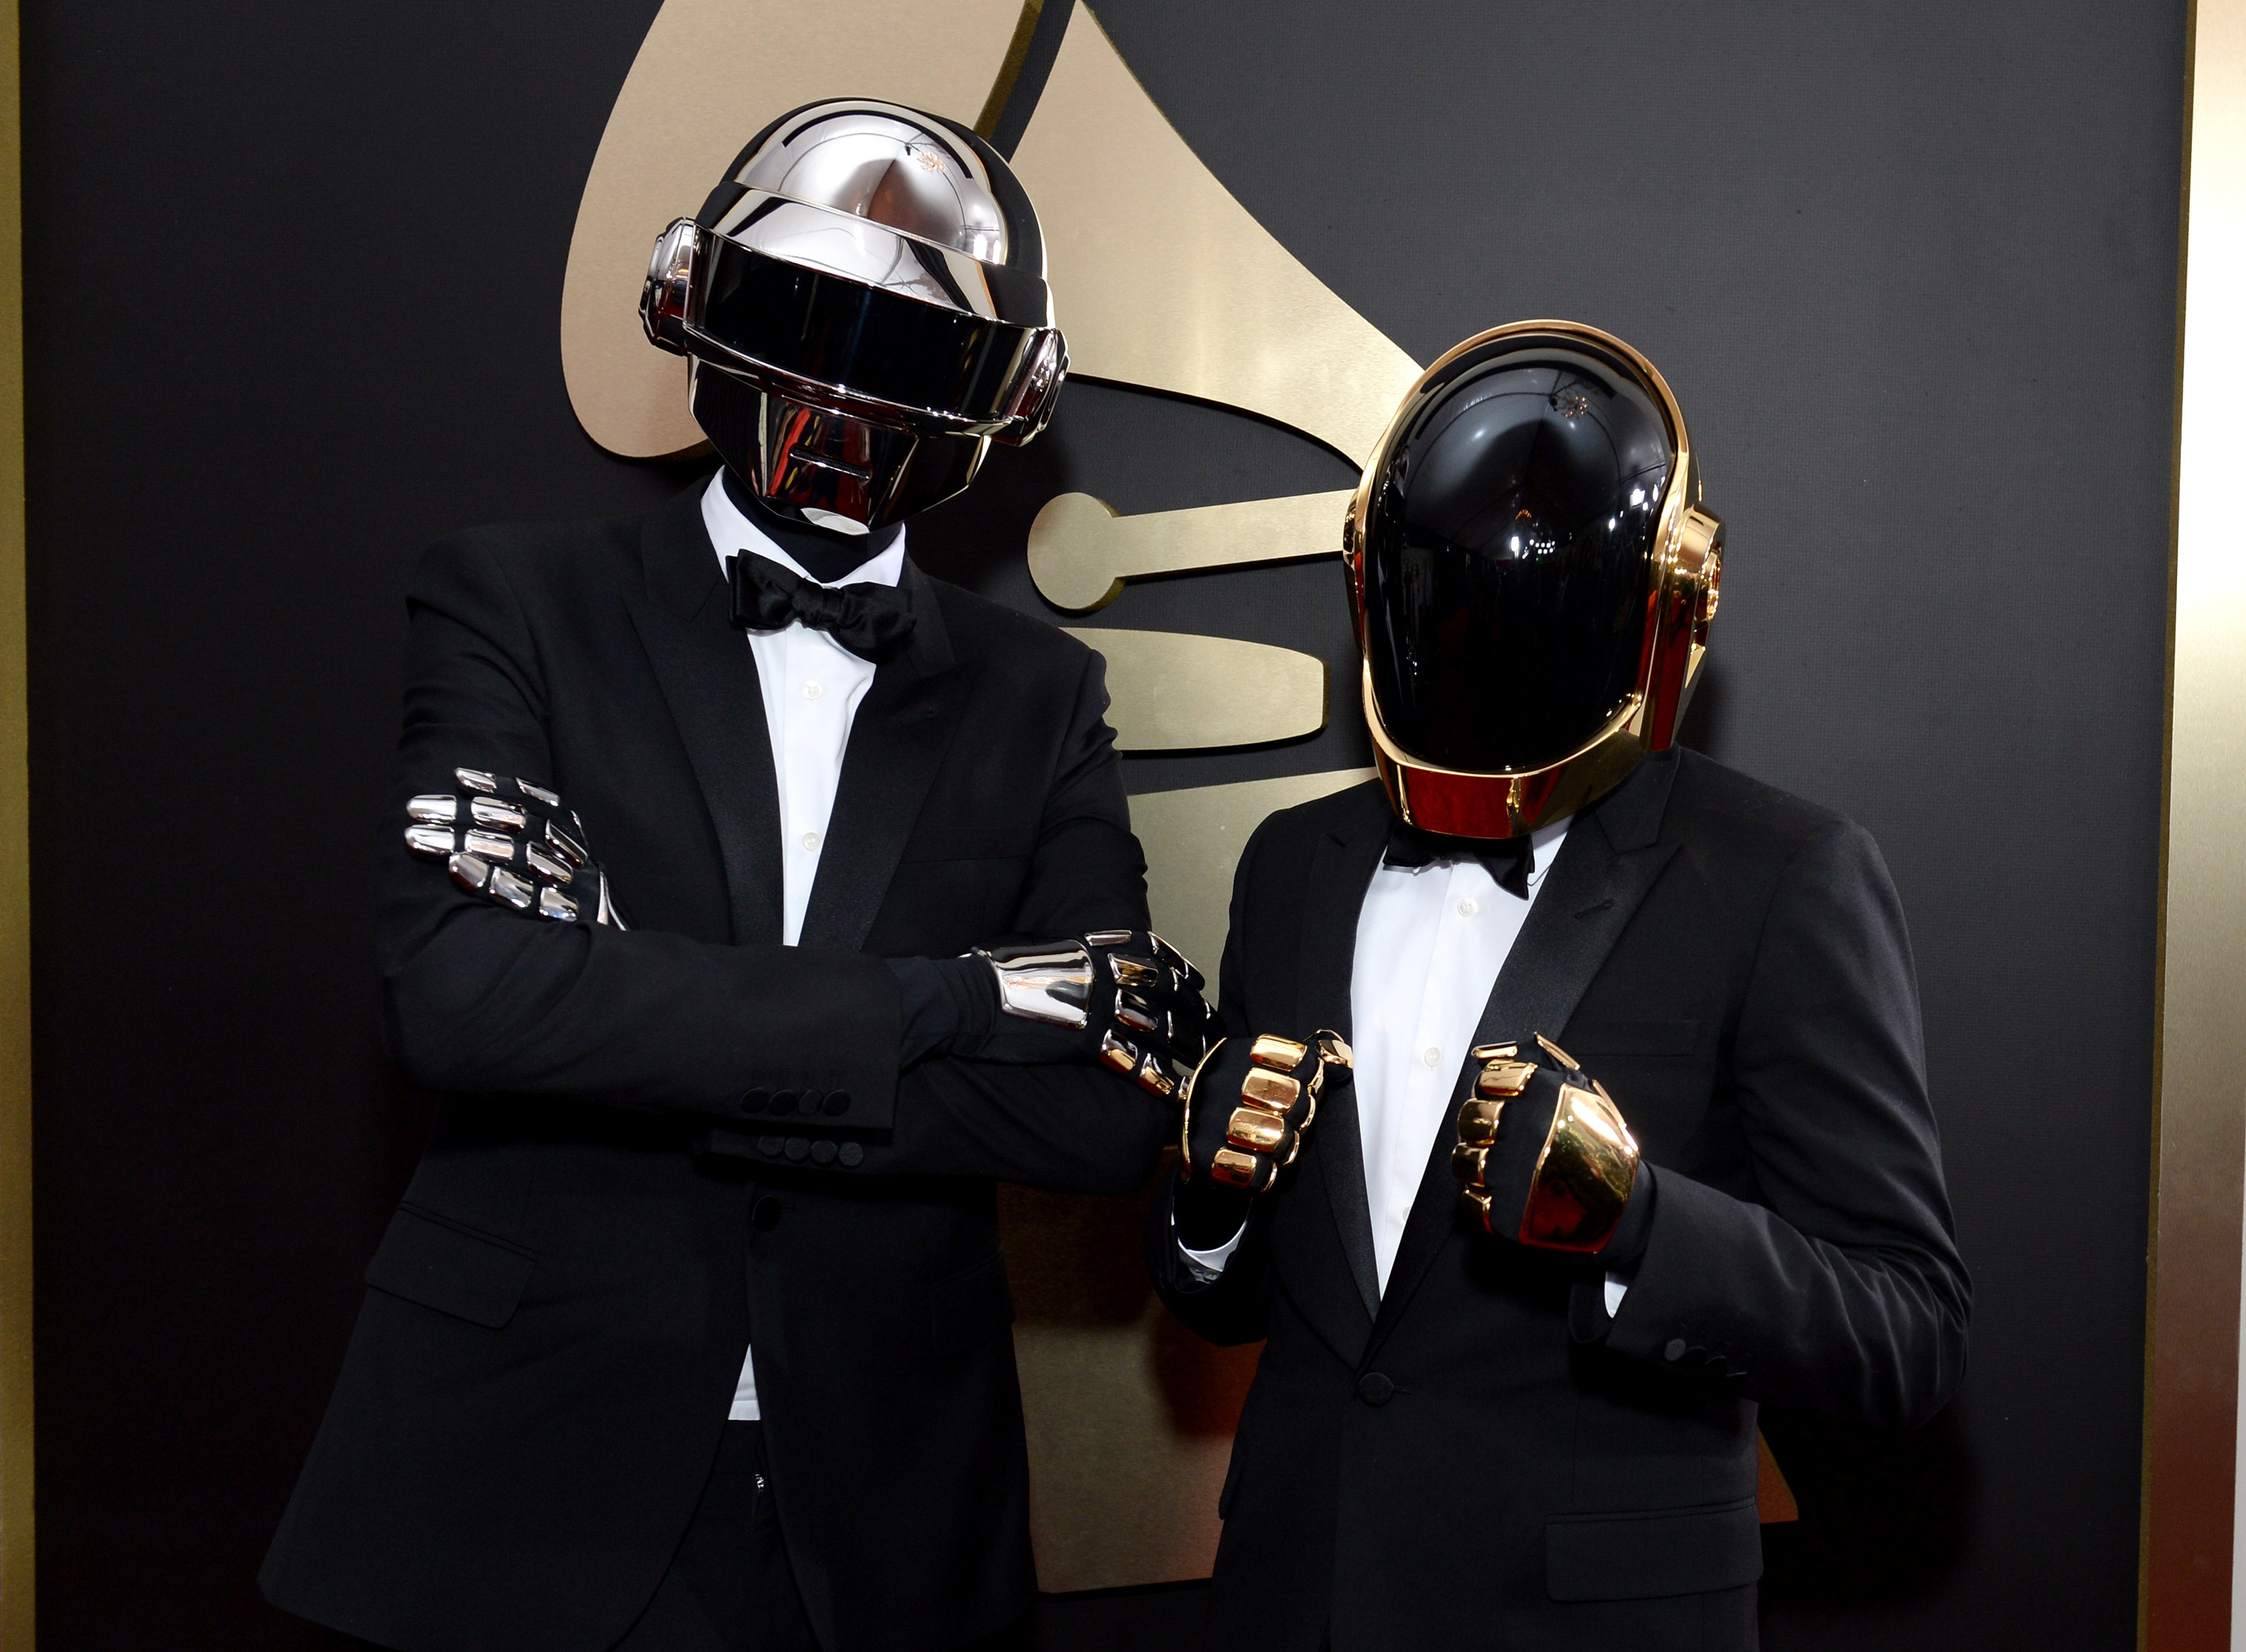 Daft Punk attends the 56th GRAMMY Awards at Staples Center on January 26, 2014 in Los Angeles, California.